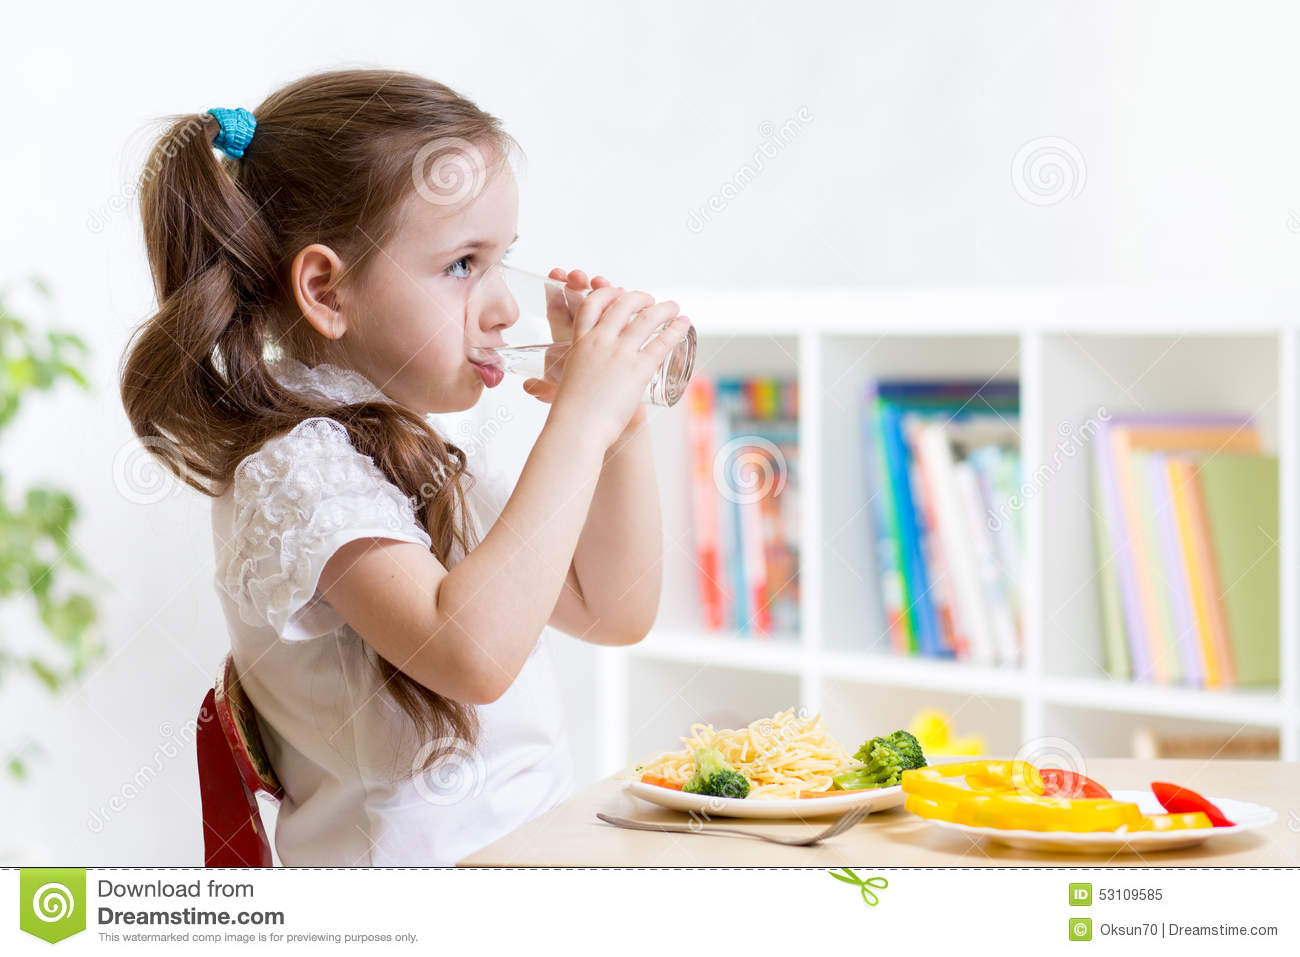 Home Drinking Water Cute Kid Girl Drinking Water In Home Stock Photo Image 53109585